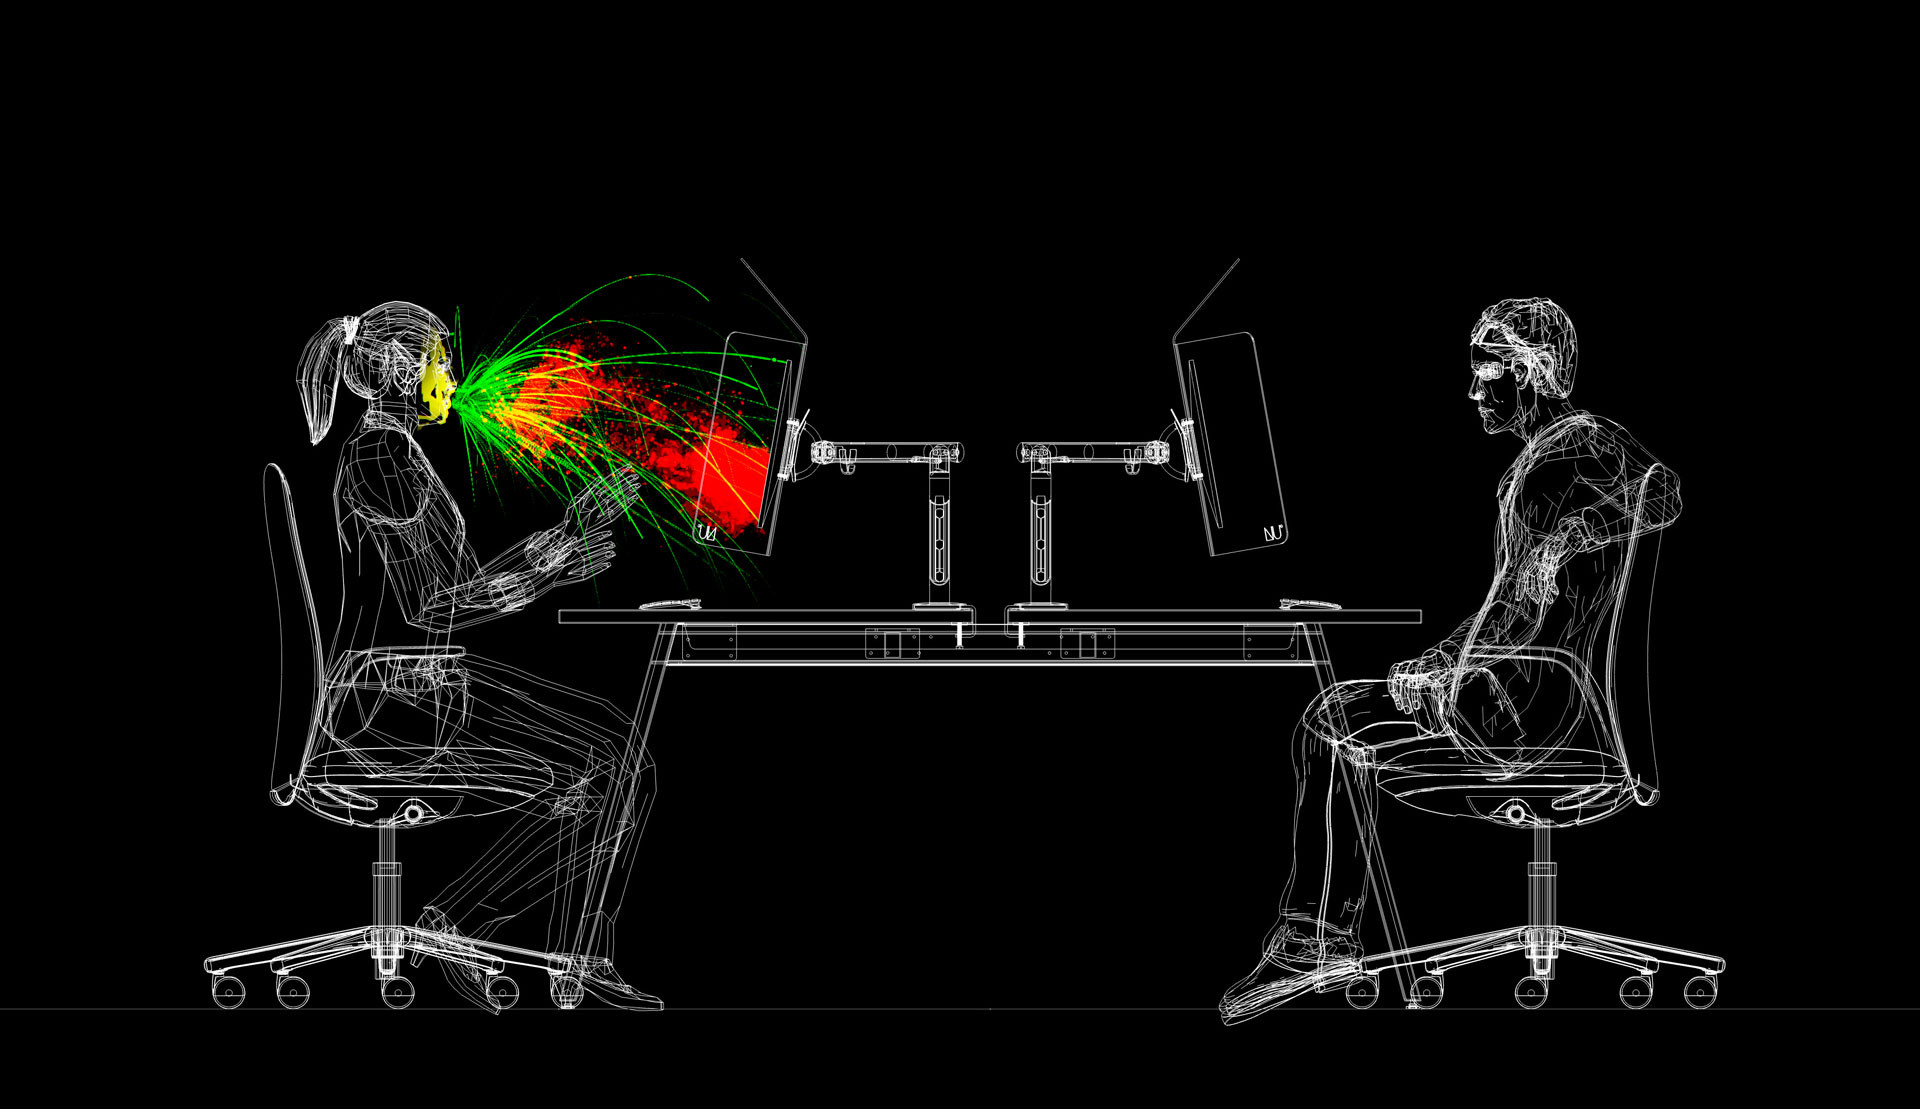 There is invisible science behind our screen.